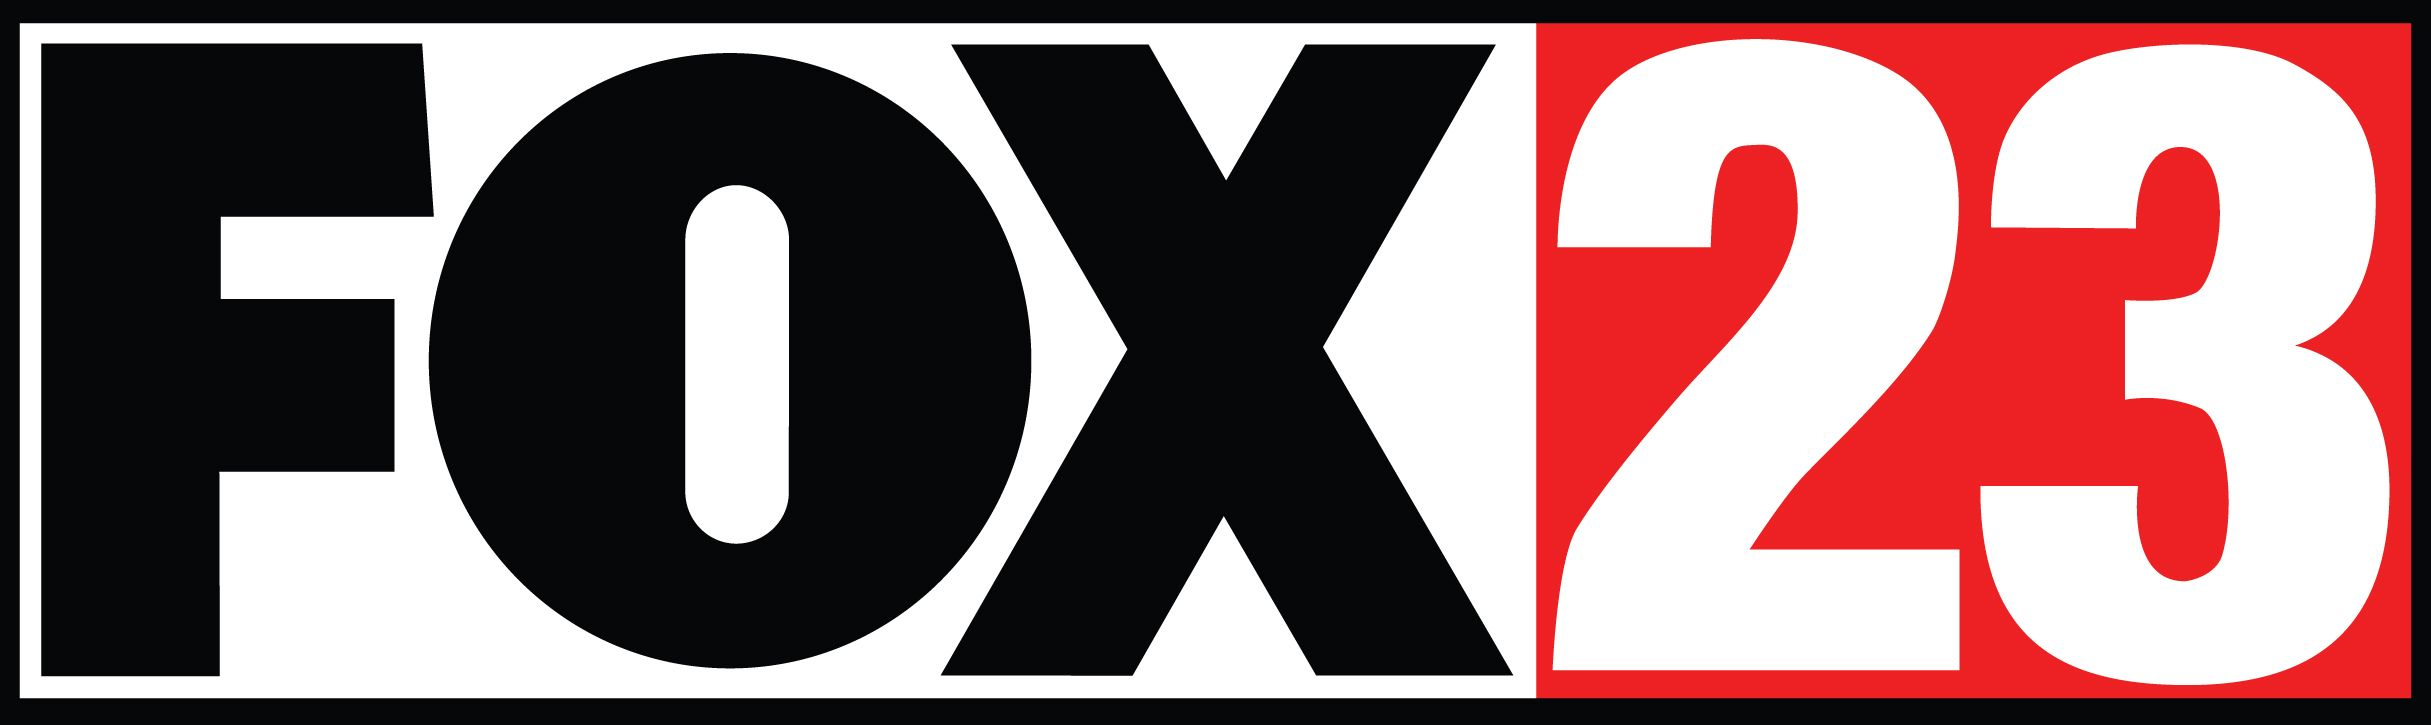 Tunes at Twilight is sponsored by FOX 23 KBSI. Thank you